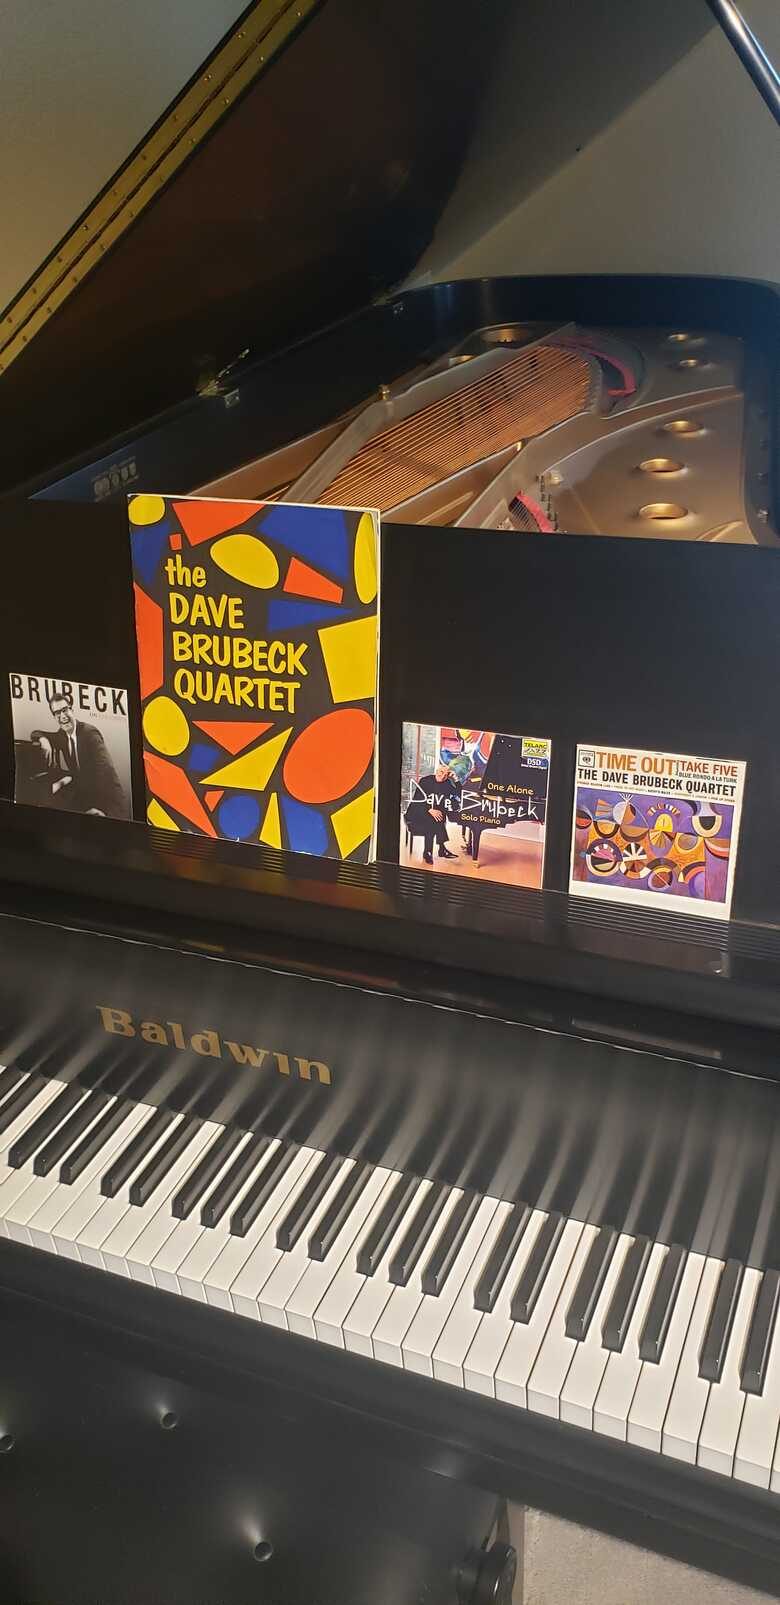 Played by Dave Brubeck at His Last Sacramento Concert